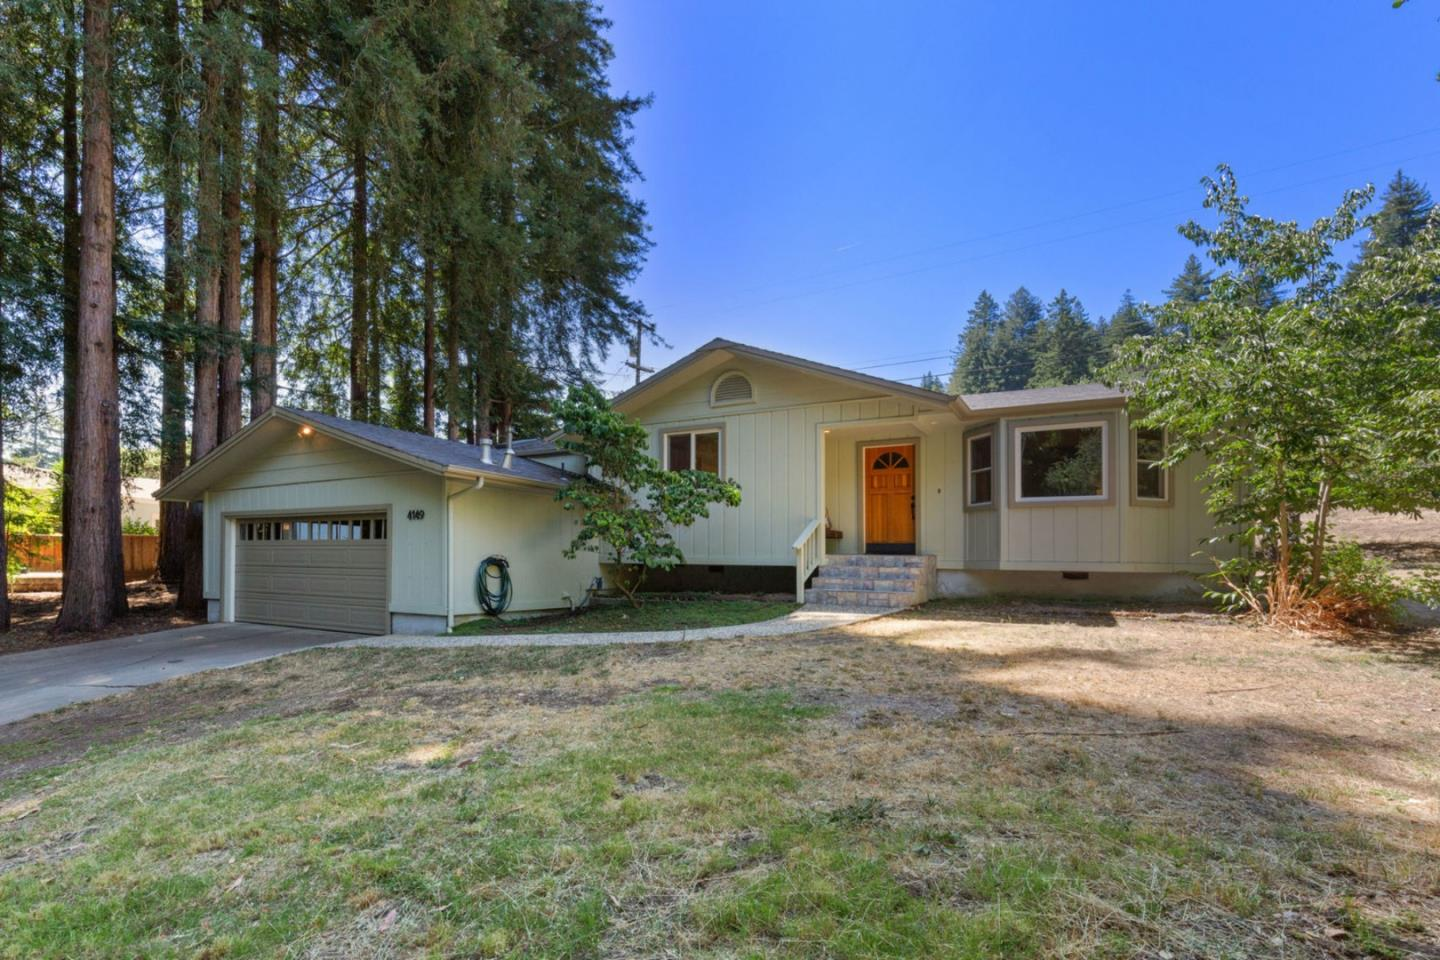 A little bit of country, but so CLOSE to town. This is the 3rd home back off La Madrona Drive, located on a private road, and only minutes to Highway 17 access. The living room has a big, bay window with seating bench. The kitchen has a breakfast bar, center island for prep, & an abundance of storage. A generous Master Suite features an updated bathroom and walk-in closet. A slider features views of the outdoor space where wild turkeys, rabbits, and the occasional fox make their appearance. The majestic Redwood Grove provides just enough shade to keep the house cool in the summer heat, while the rest of the third acre parcel has great sun exposure with plenty of gardening space and room for chickens. This location offers the best of country living while still being close to the comforts and convenience of town. Located nearby Henry Cowell hiking & biking trails, La Madrona Athletic Club, a short drive to Santa Cruz beaches, & within the highly desirable Scotts Valley School District.